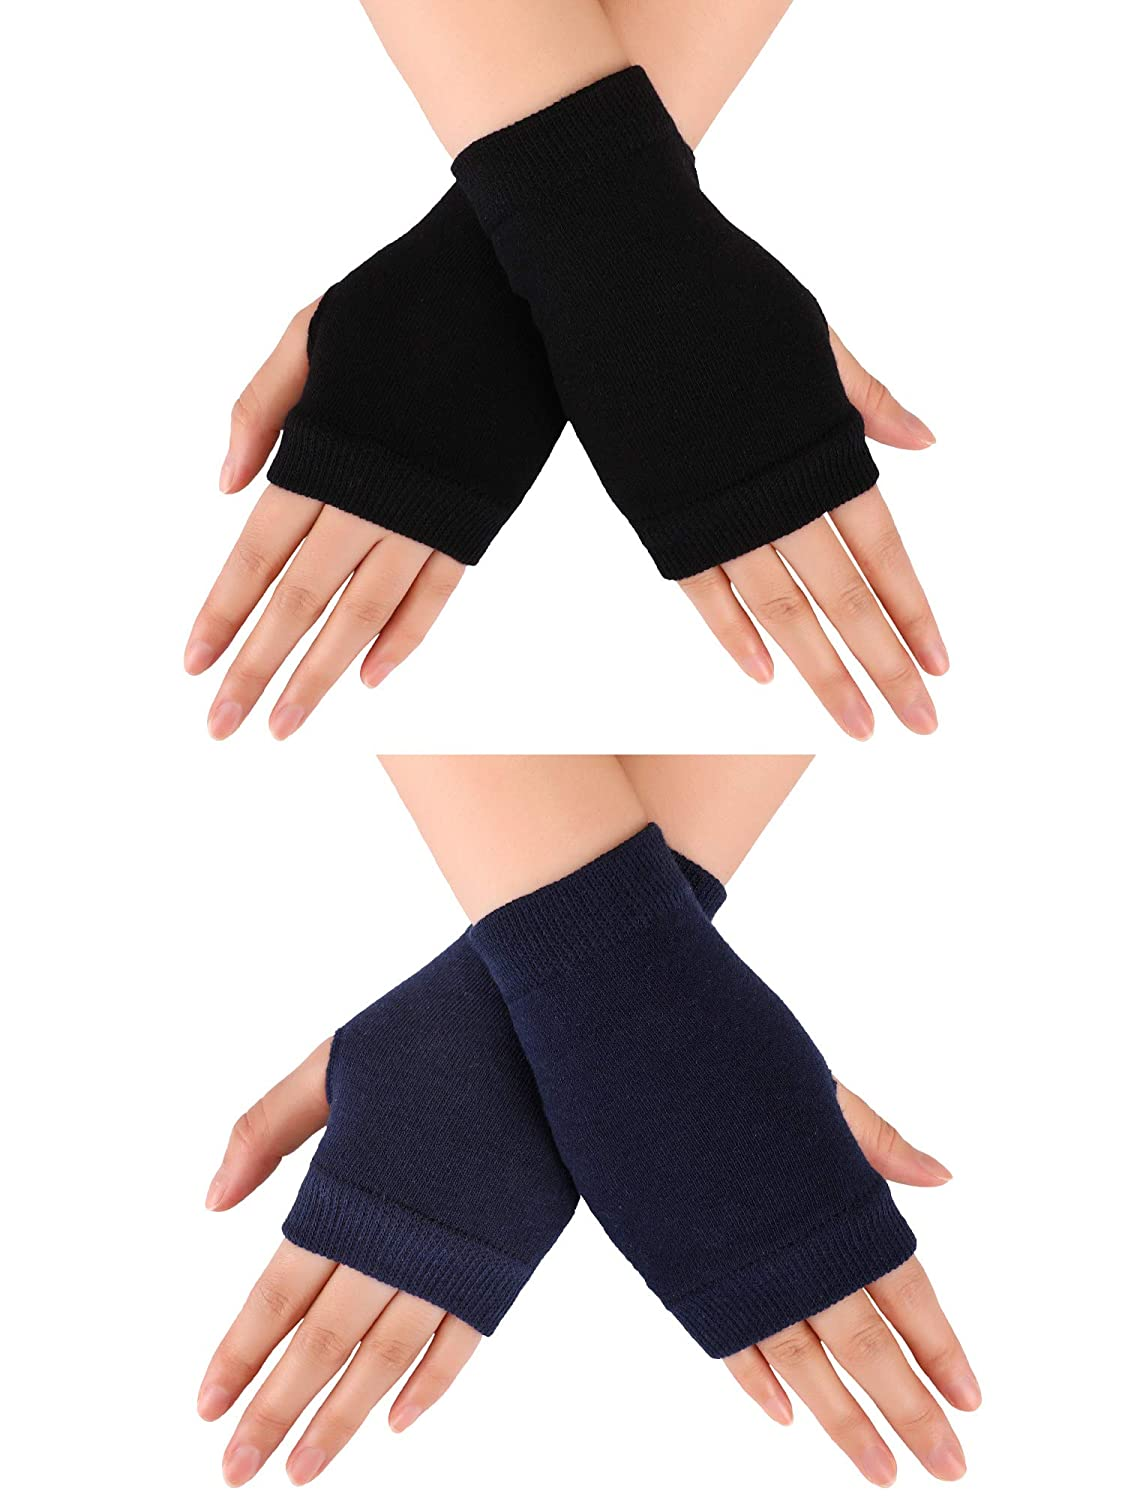 Blulu 2 Pairs Fingerless Warm Gloves with Thumb Hole Cozy Half Fingerless Driving Gloves Knit Mittens for Men, Women Women (Black)